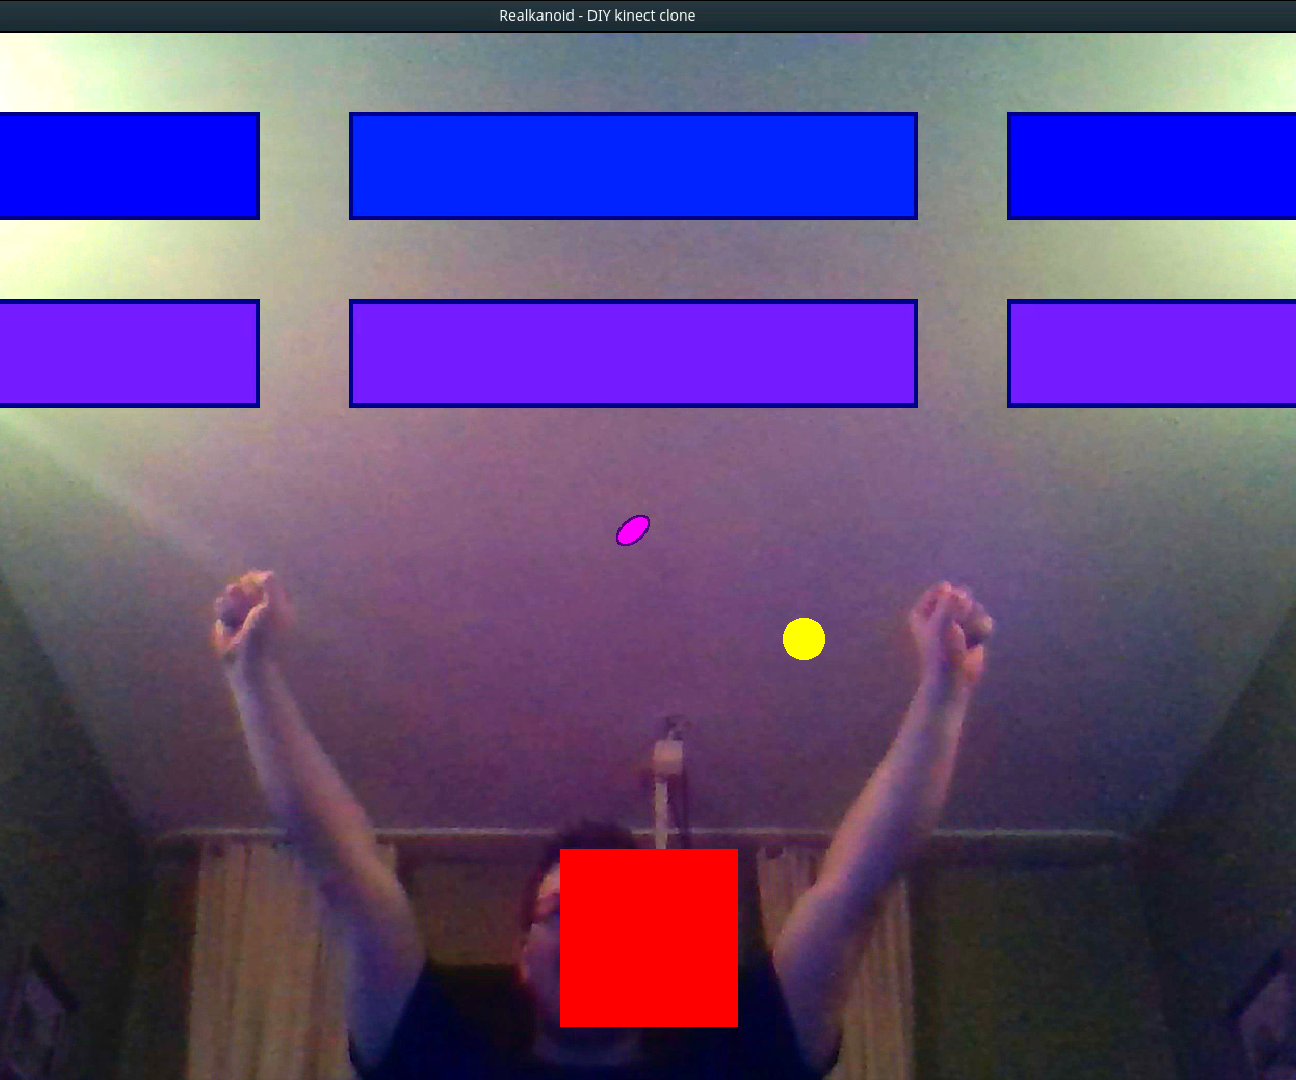 DIY Video Game Controlled by Head Movement (Augmented Reality)